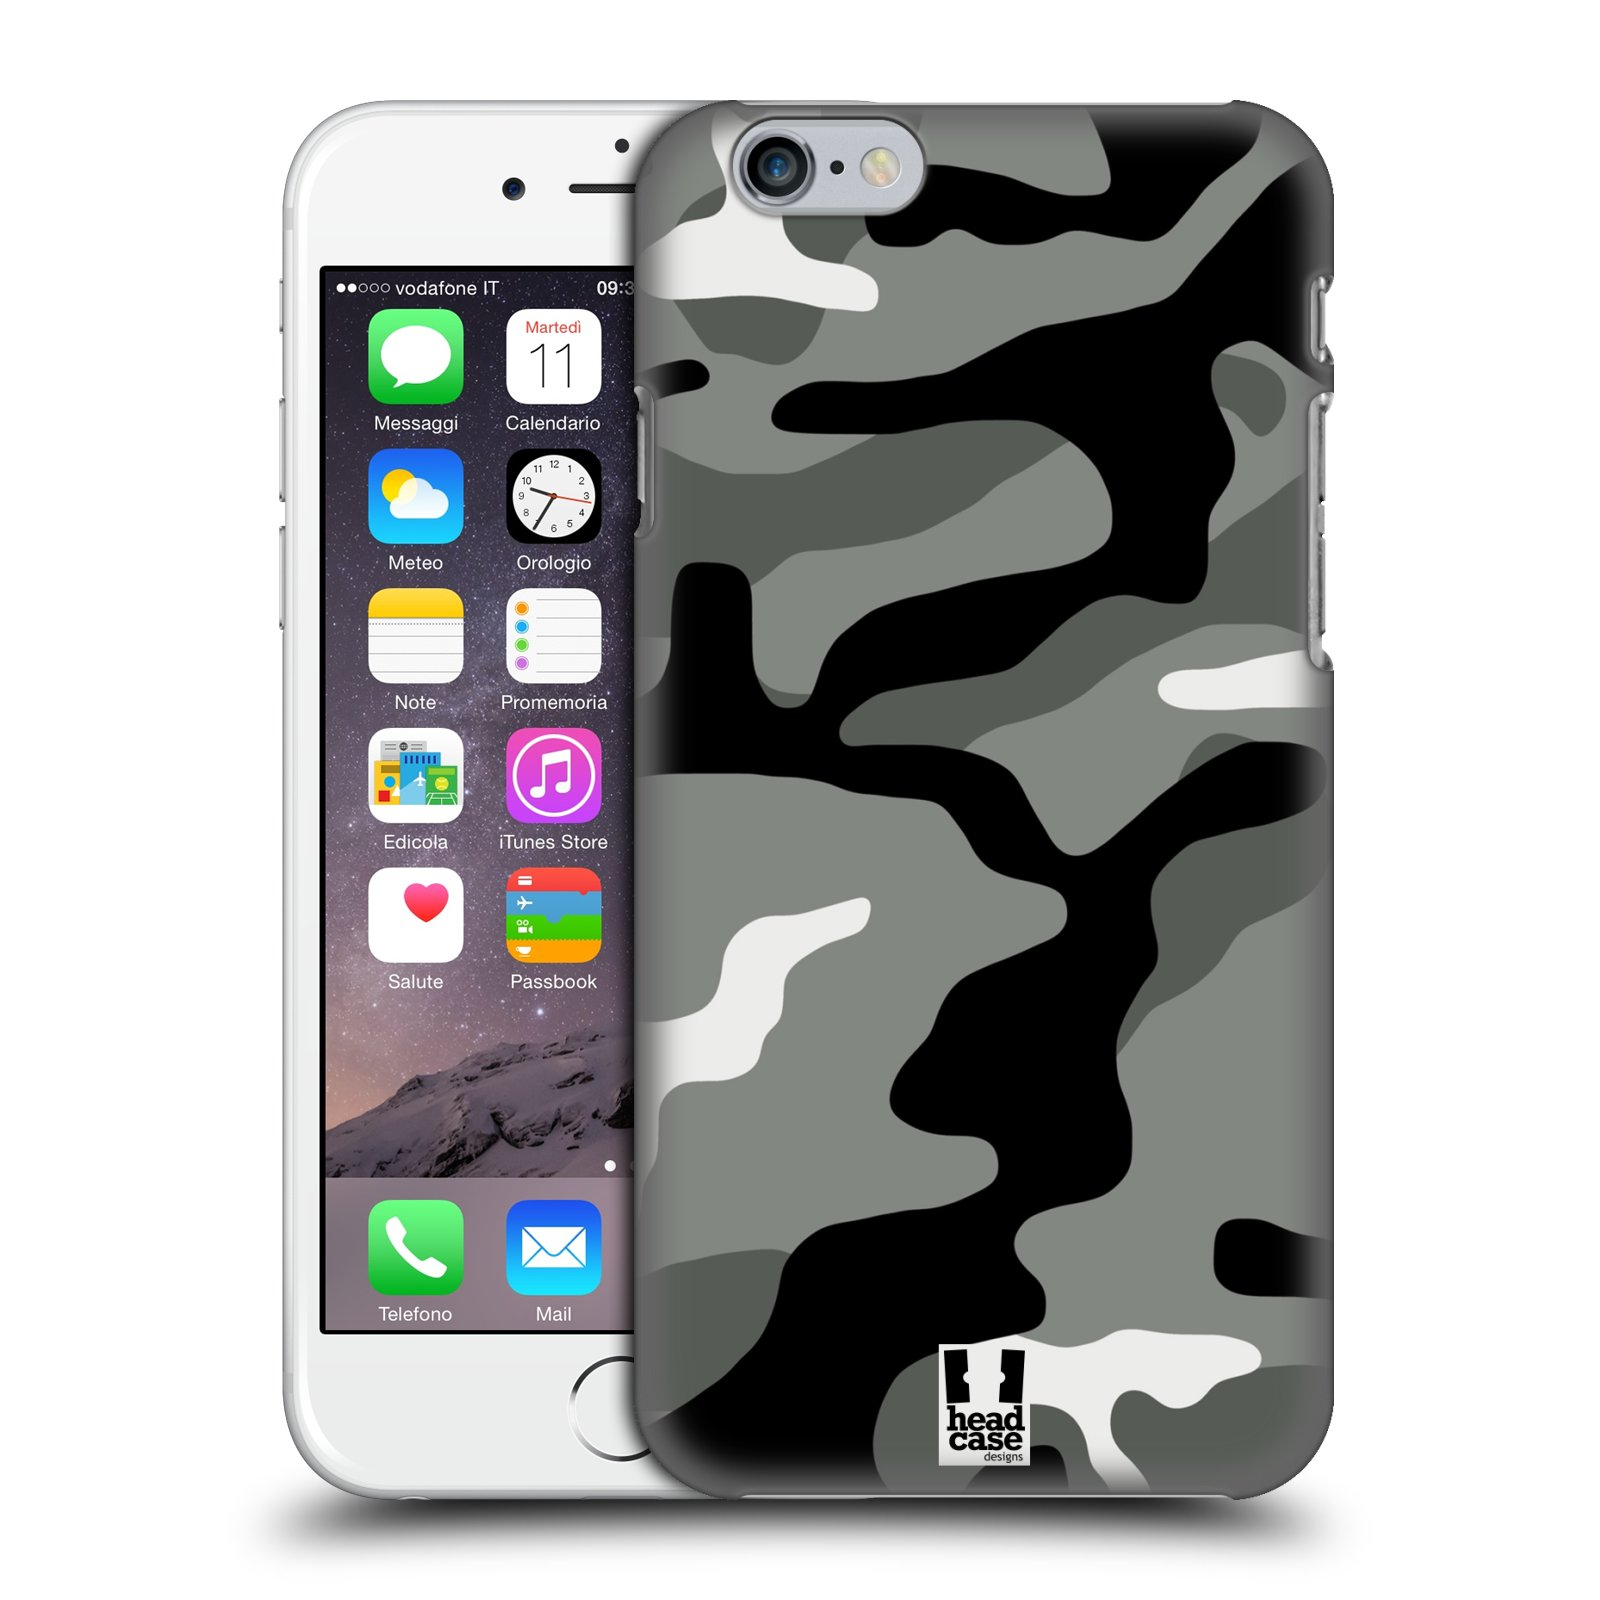 Head case designs military camo hard back case for apple for Cell phone cover design ideas